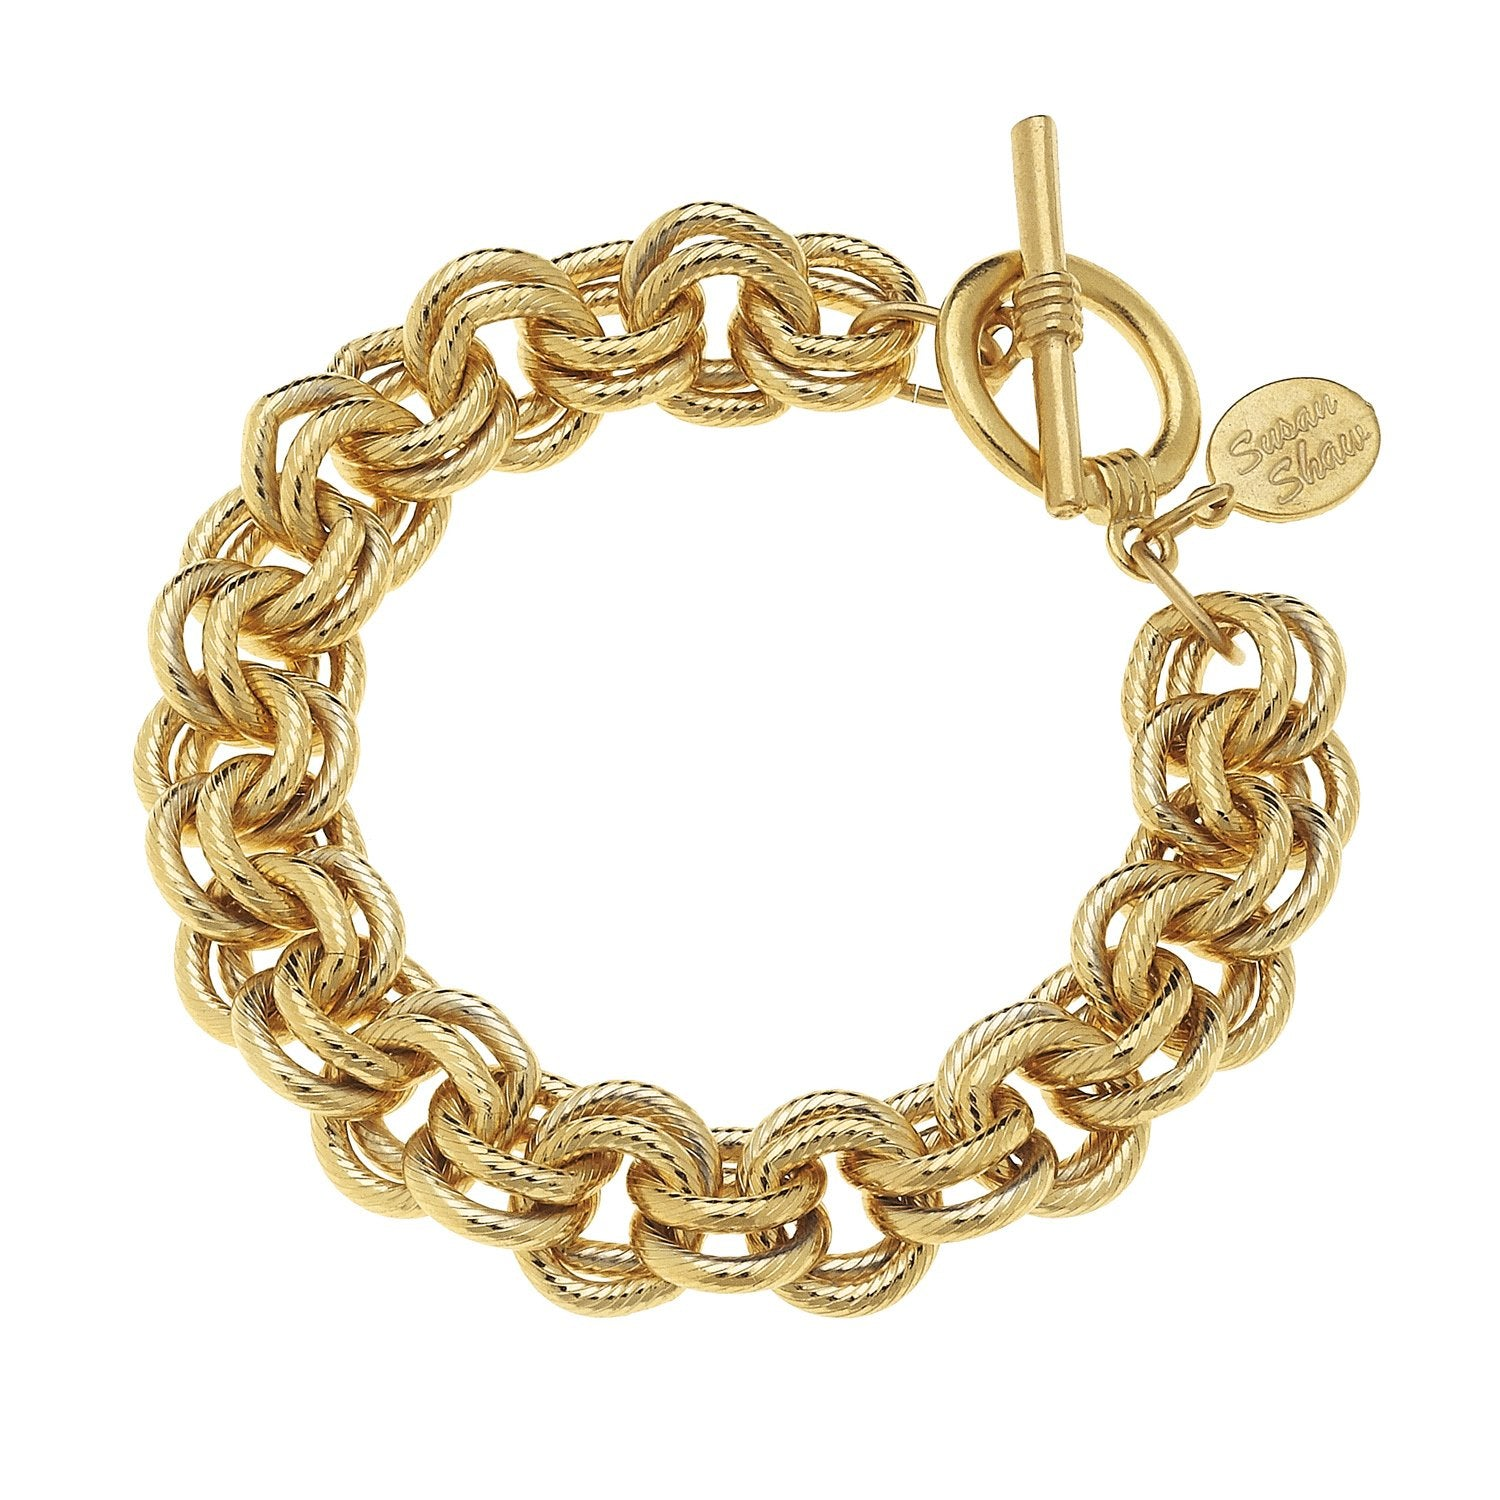 Double Linked Chain Bracelet